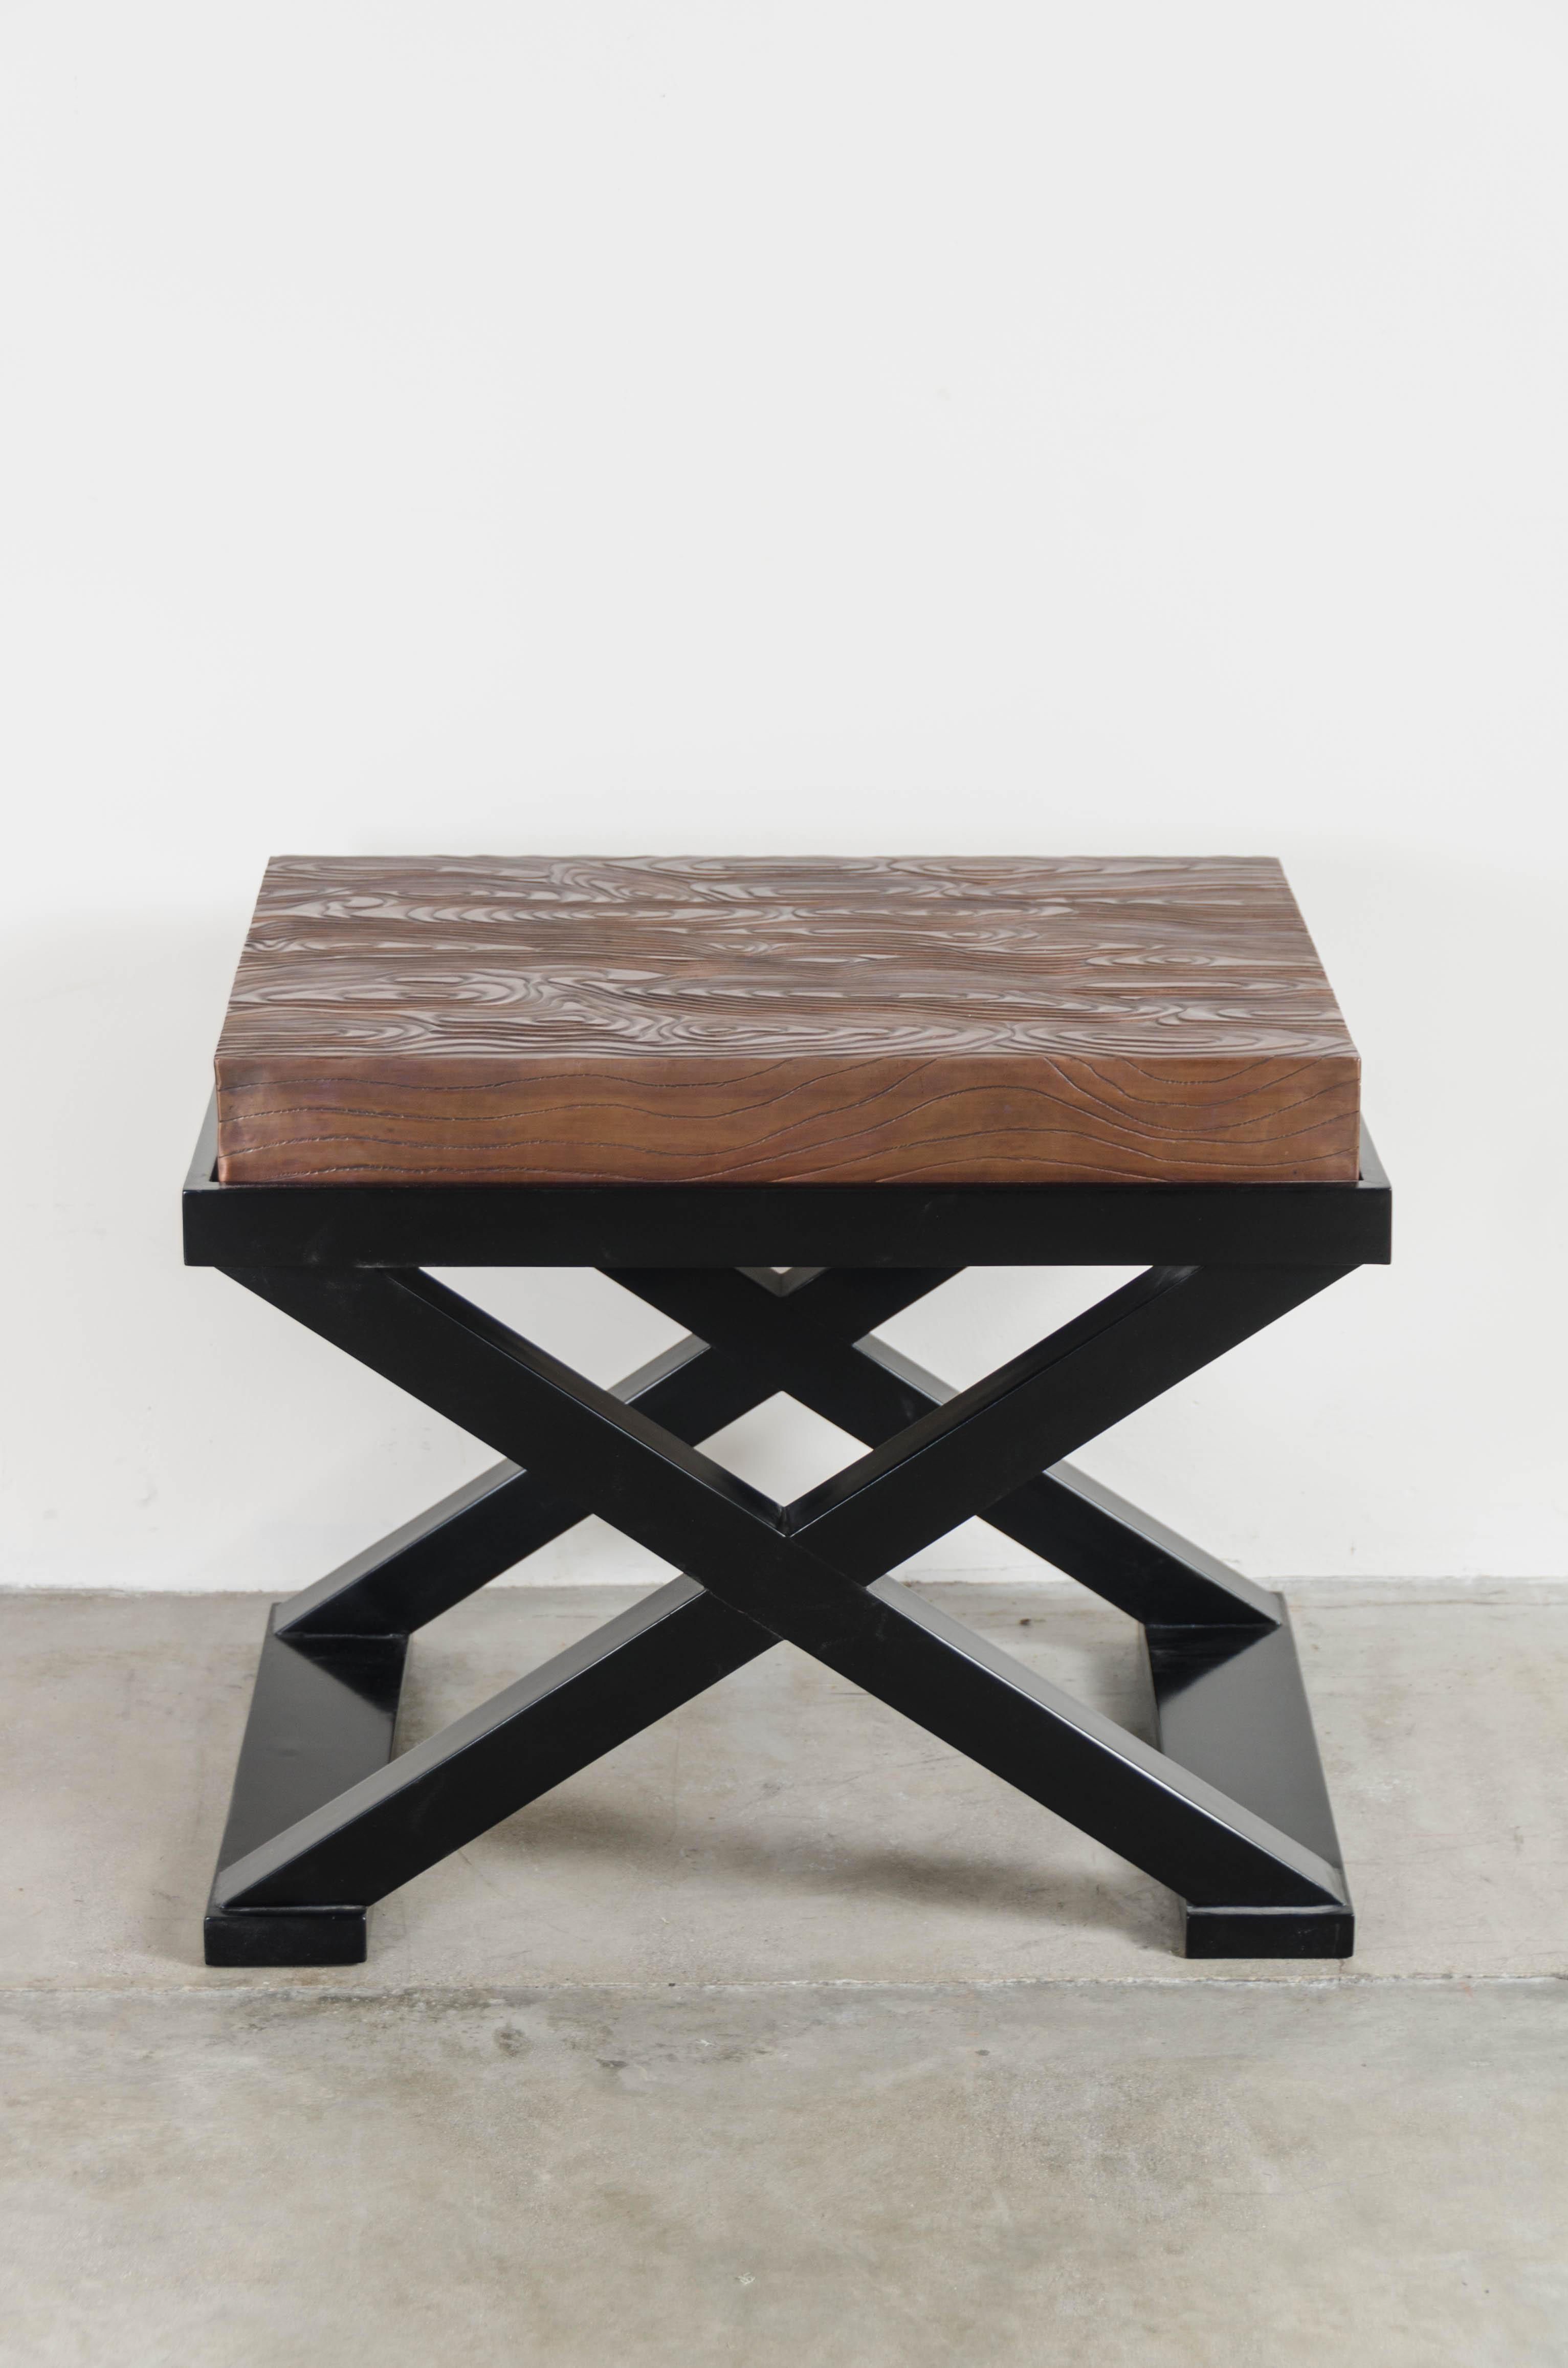 Wood Grain Design Top W/ Cross Leg Table By Robert Kuo, Hand Repoussé,  Limited Edition